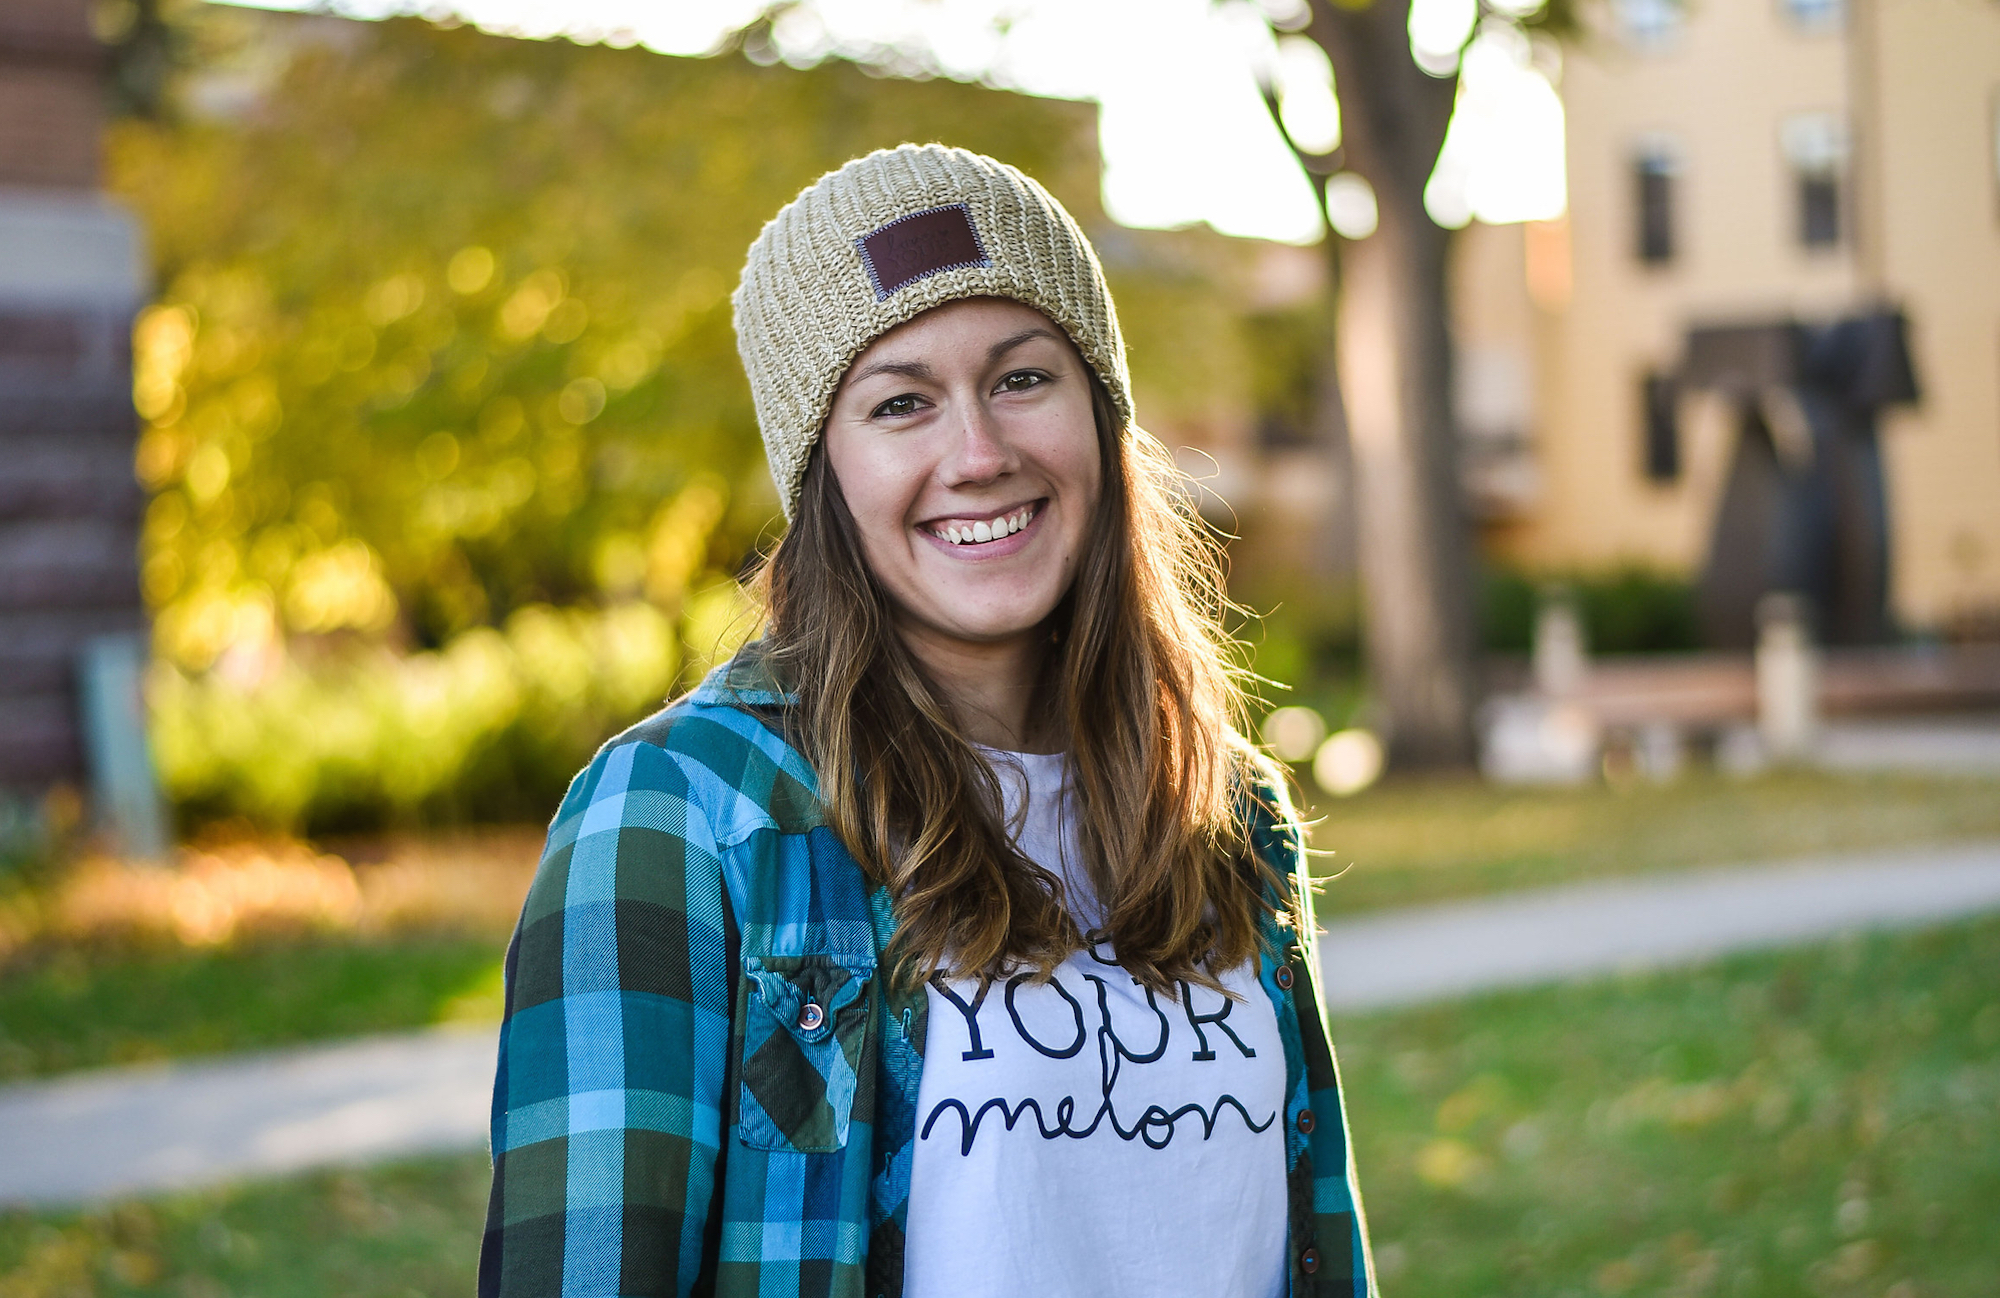 674f9e2c3a865 Hannah Fordahl  16 is one of the thousands of college students across the  country committed to the mission of Love Your Melon. Hannah attended St.  Thomas ...